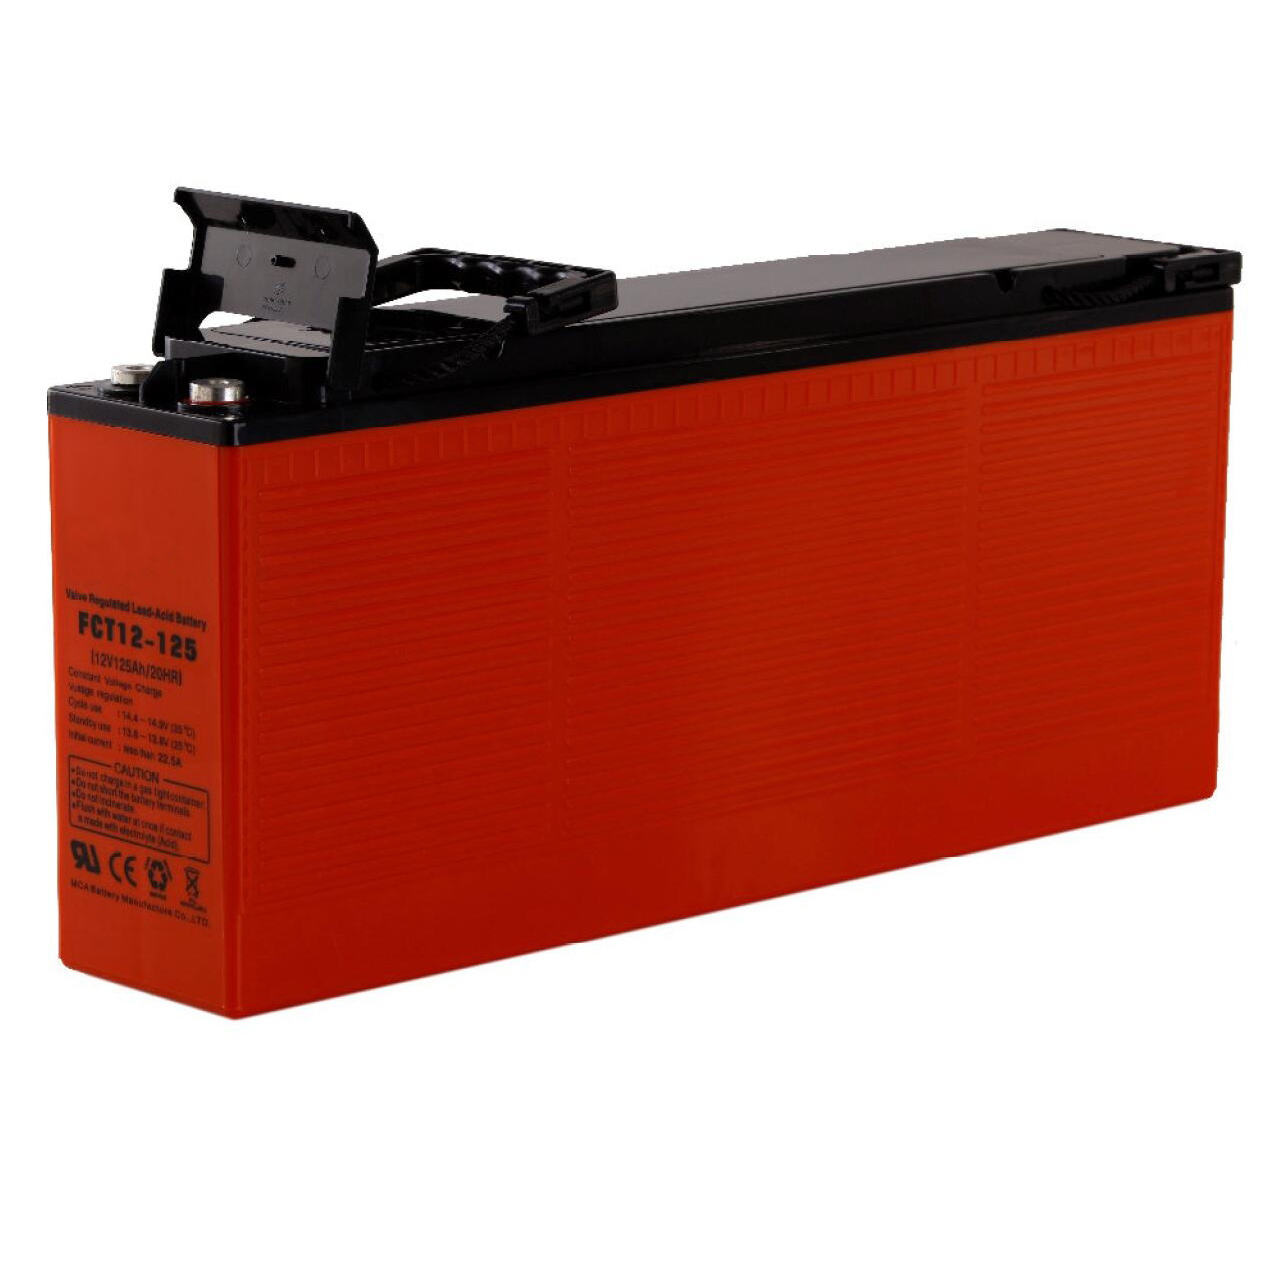 12V 125Ah Front Terminal Battery Manufacturers, 12V 125Ah Front Terminal Battery Factory, Supply 12V 125Ah Front Terminal Battery